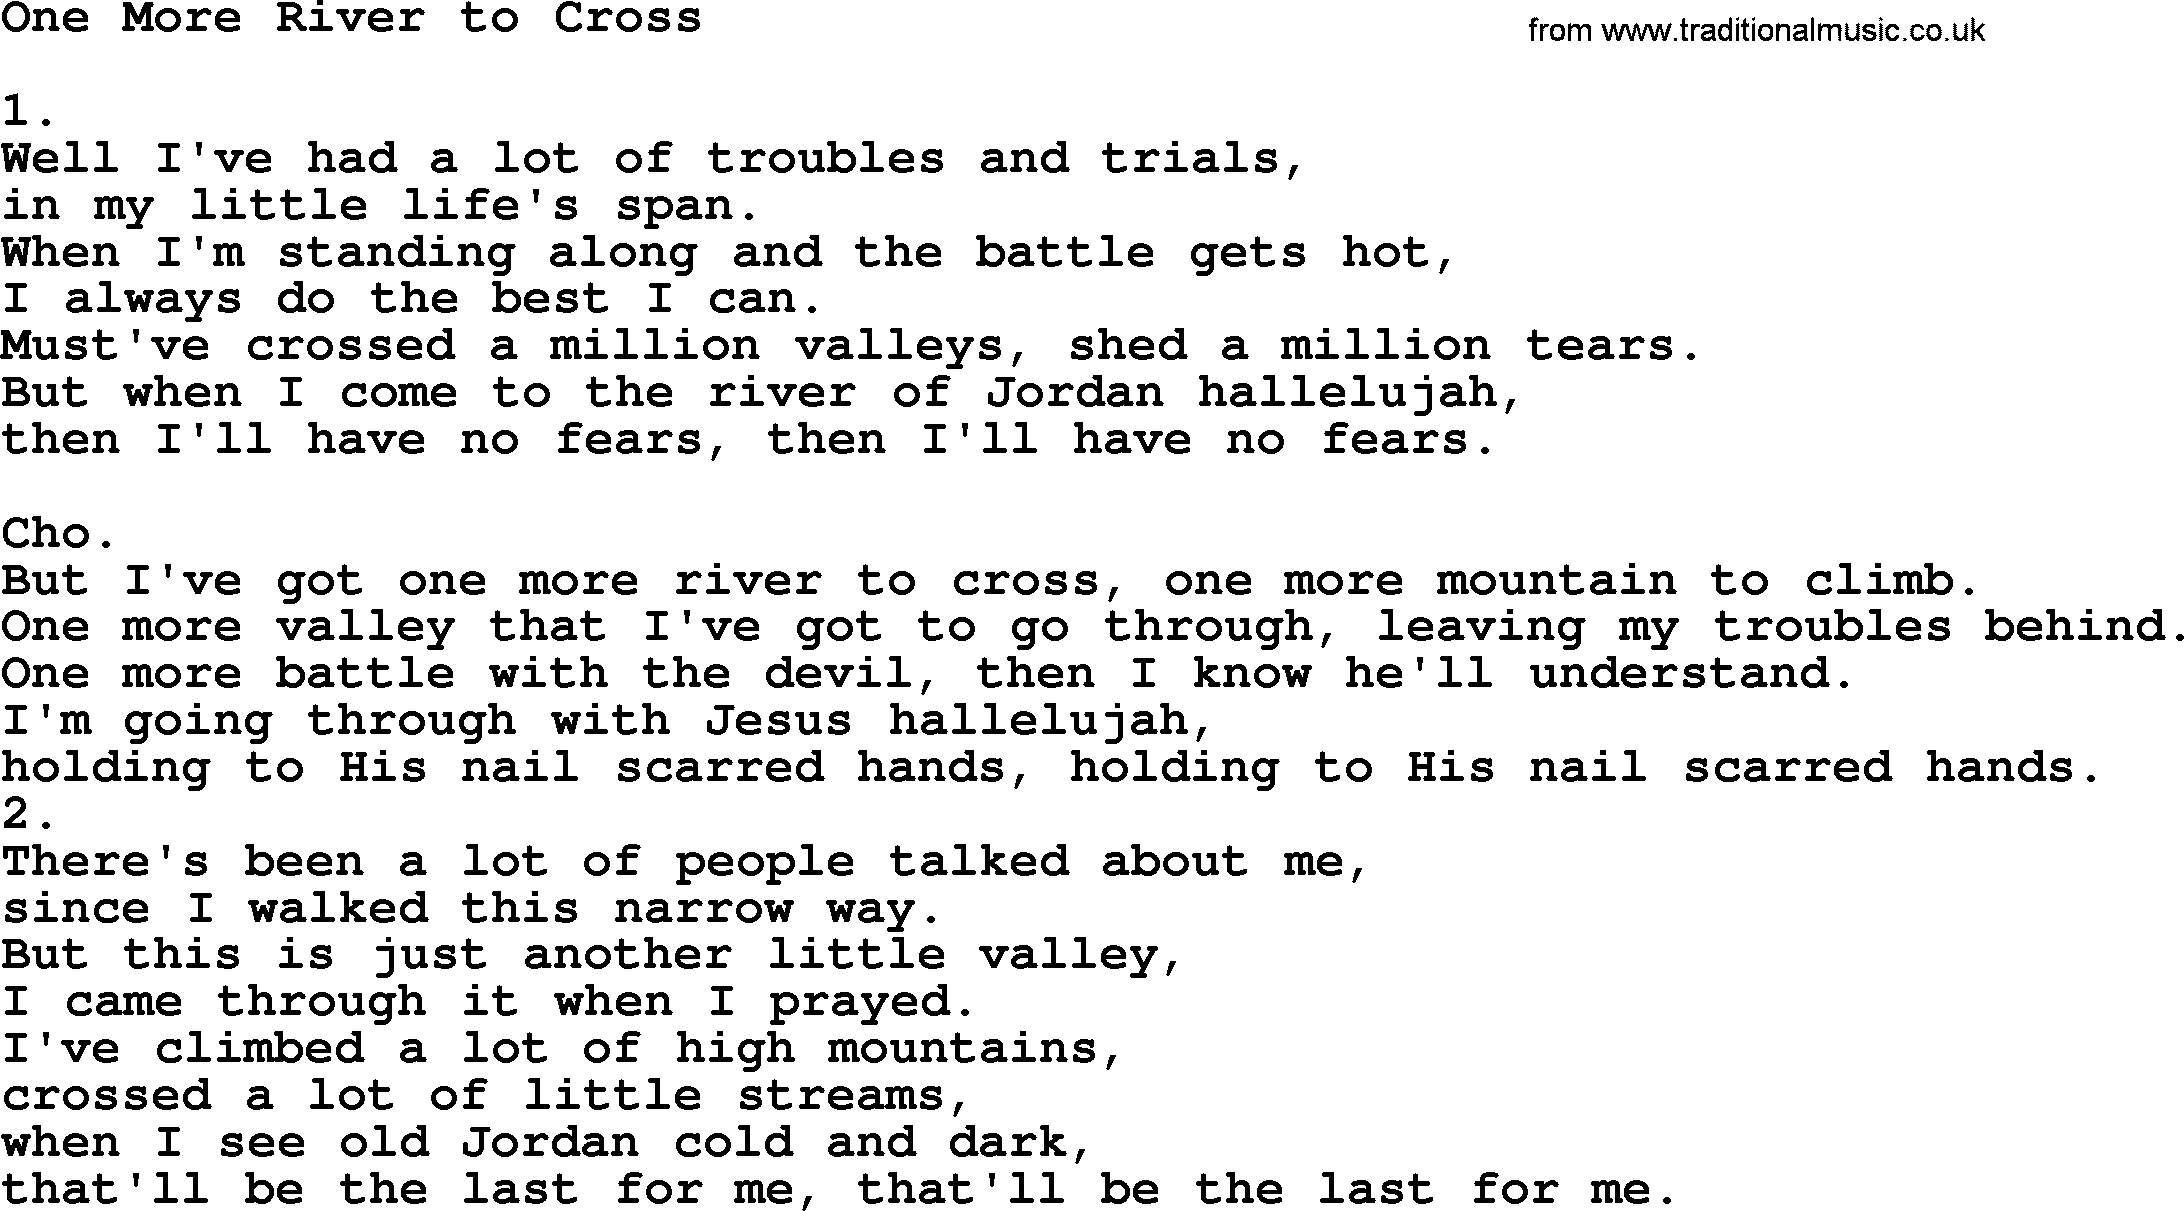 One More River to Cross - Apostolic and Pentecostal Hymns and Songs ...